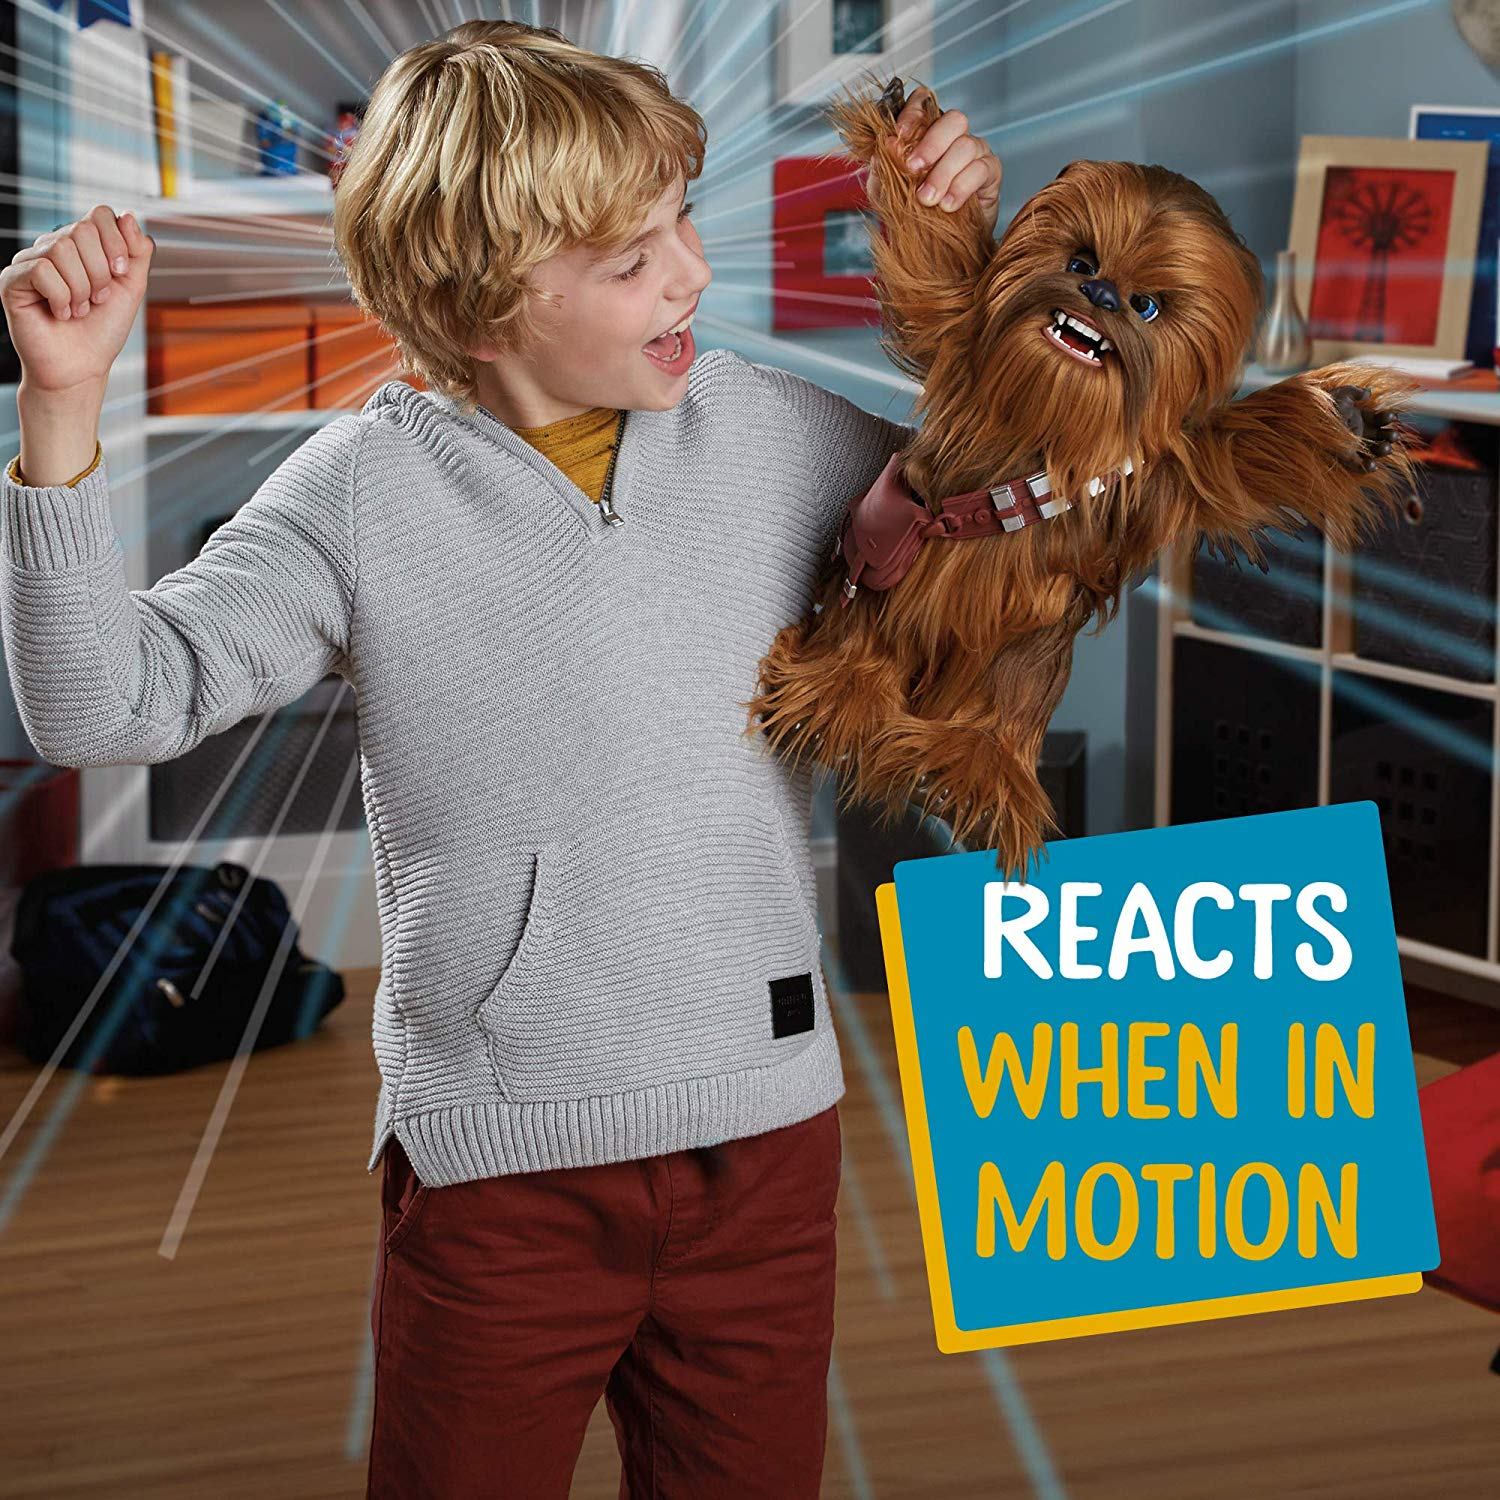 81bF2z3MAVL. SL1500 - Star Wars Ultimate Co-pilot Chewie Interactive Plush Toy, brought to life by furReal, 100+ Sound-and-Motion Combinations, Ages 4 and Up Style:Standard